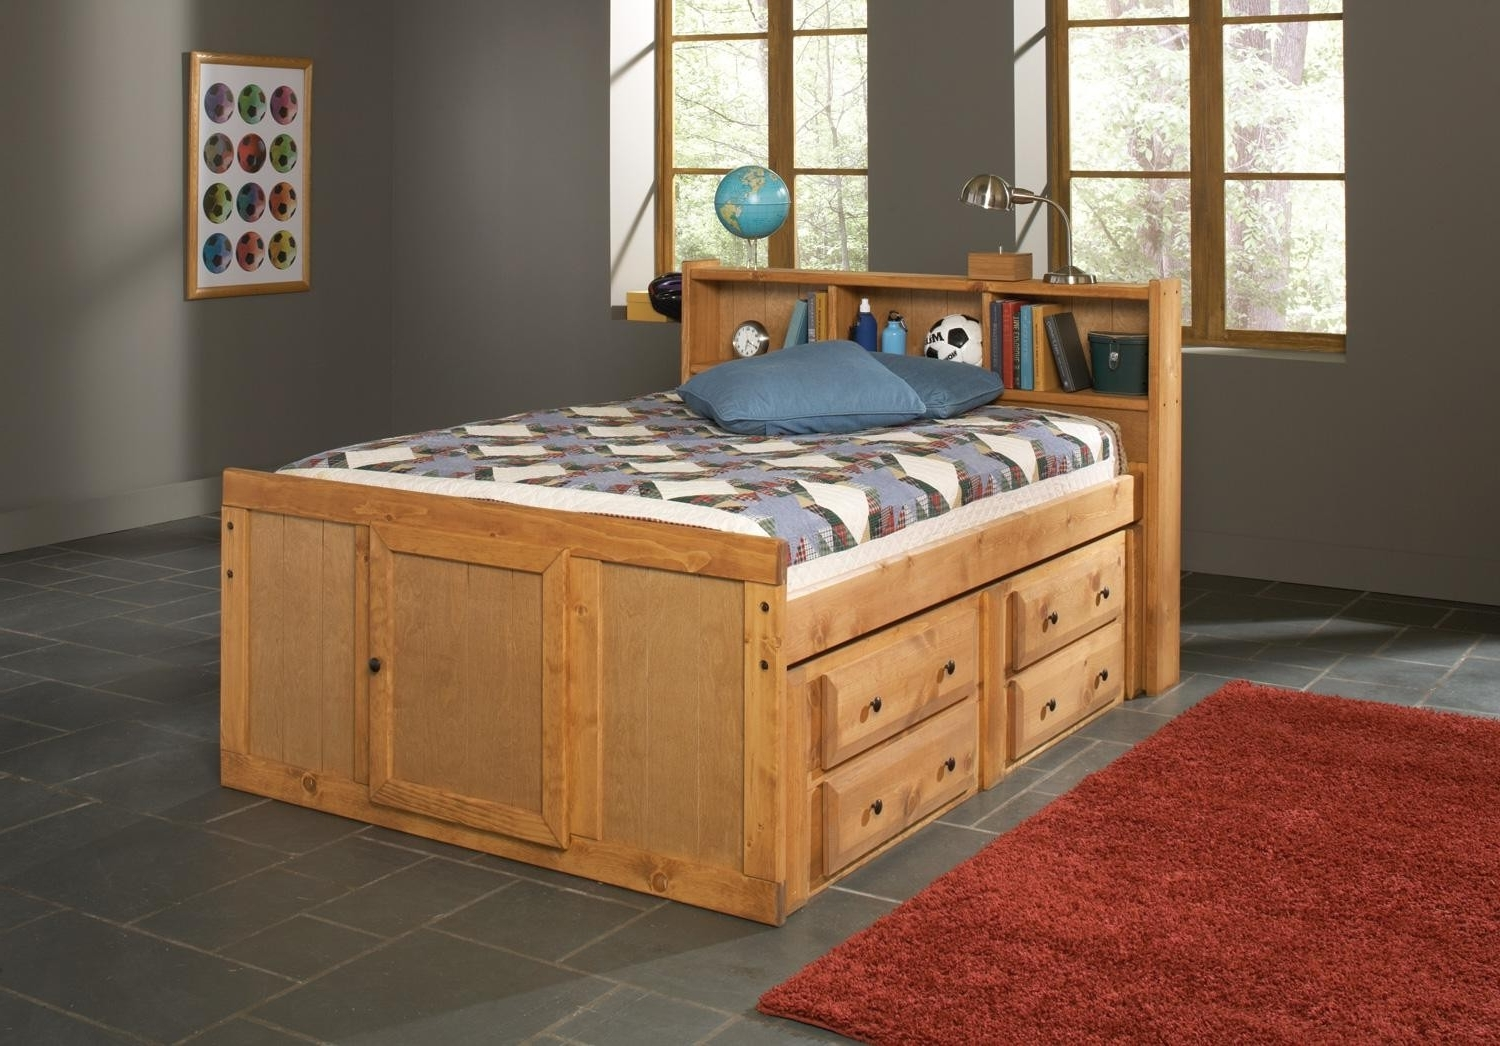 2017 Full Size Storage Bed With Bookcases Headboard For Oak Finish Children Full Size Bed With Bookcase Storage Headboard (View 1 of 15)